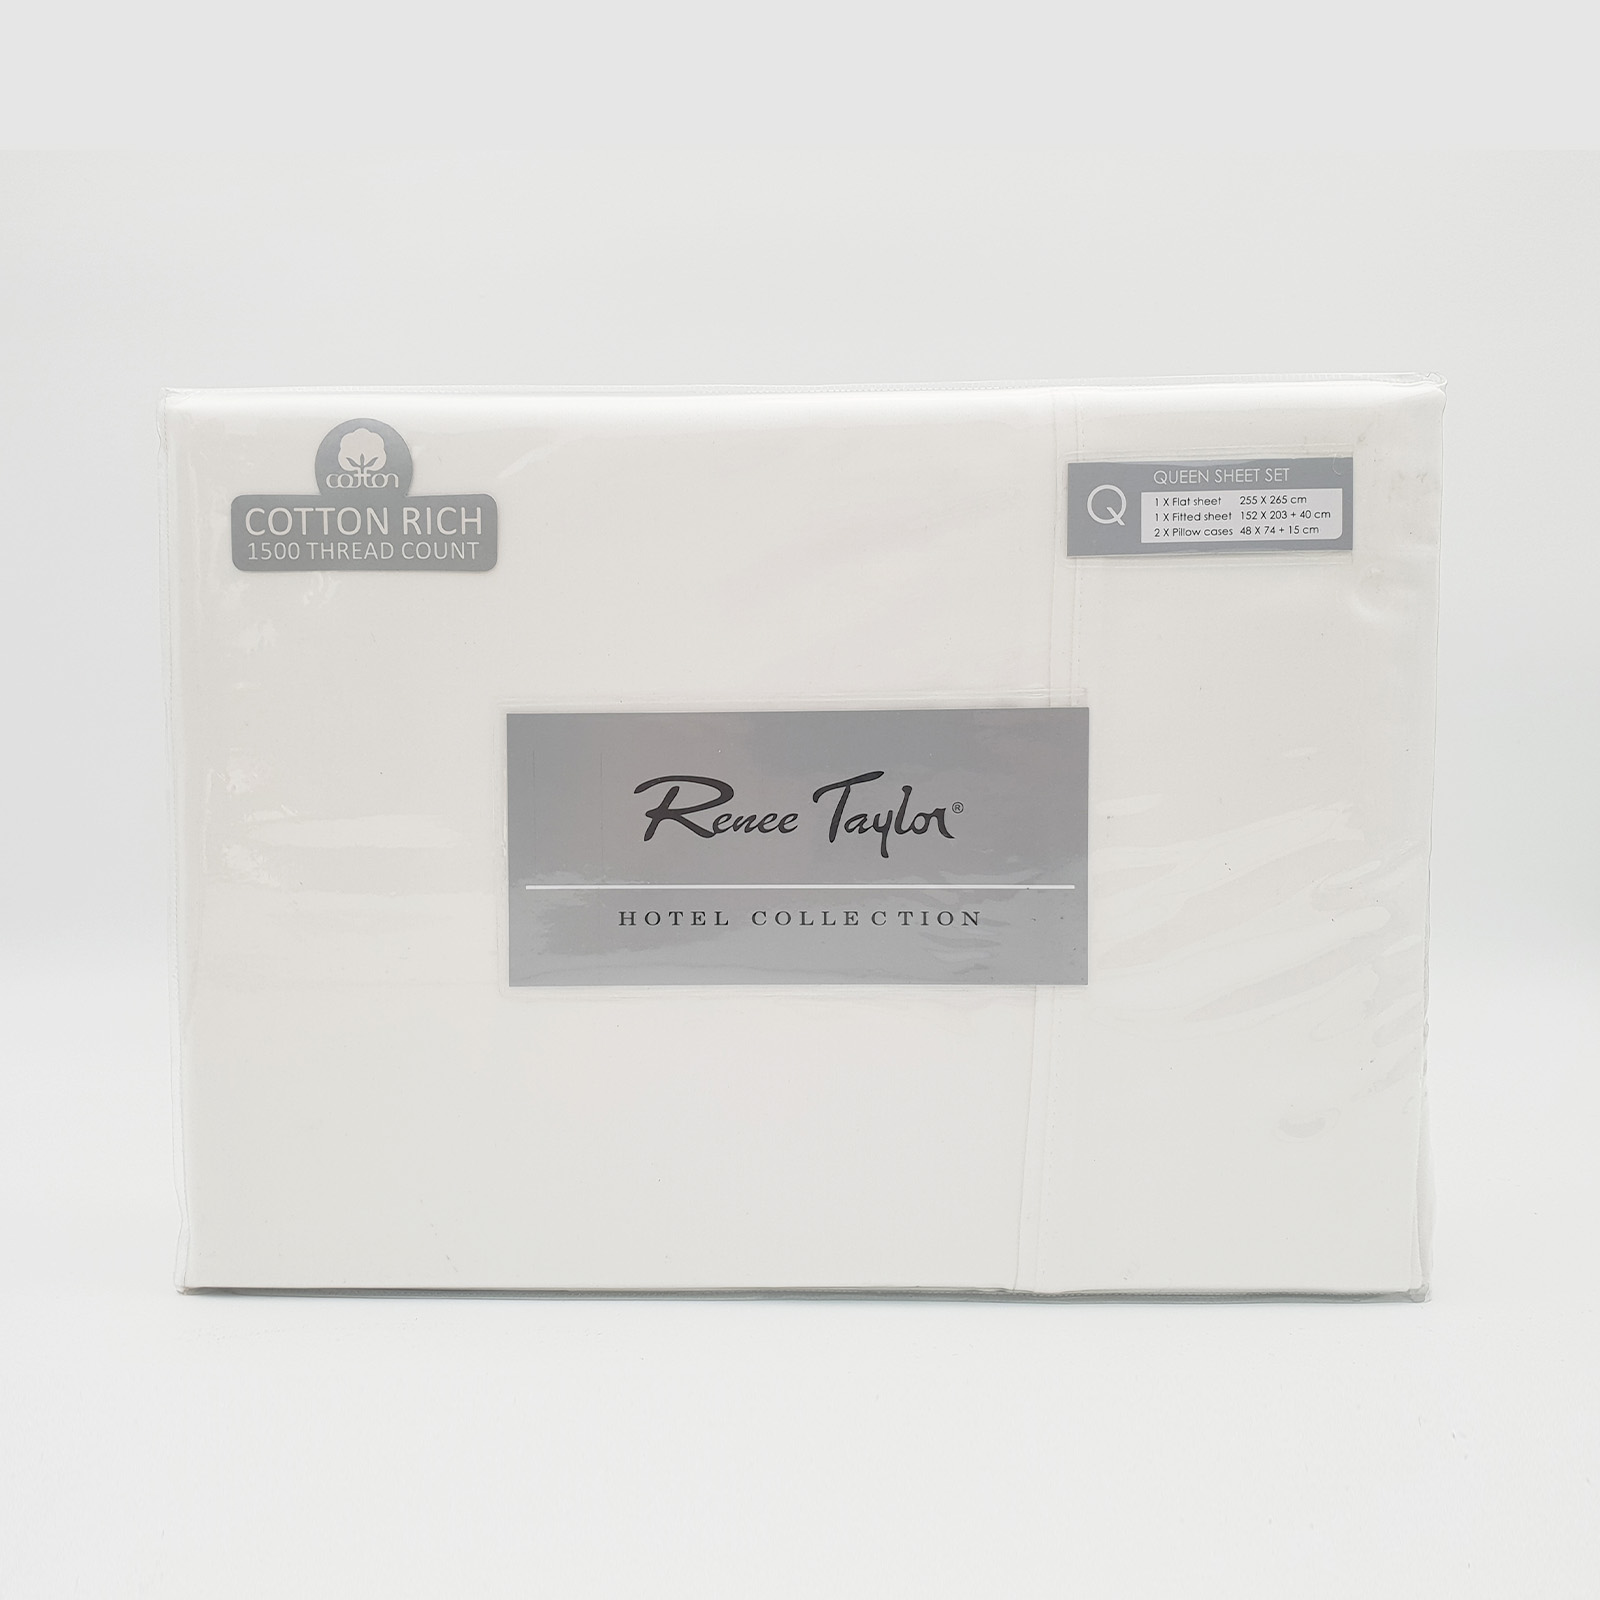 Renee-Taylor-1500-Thread-Count-Pure-Soft-Cotton-Blend-Flat-amp-Fitted-Sheet-Set thumbnail 20